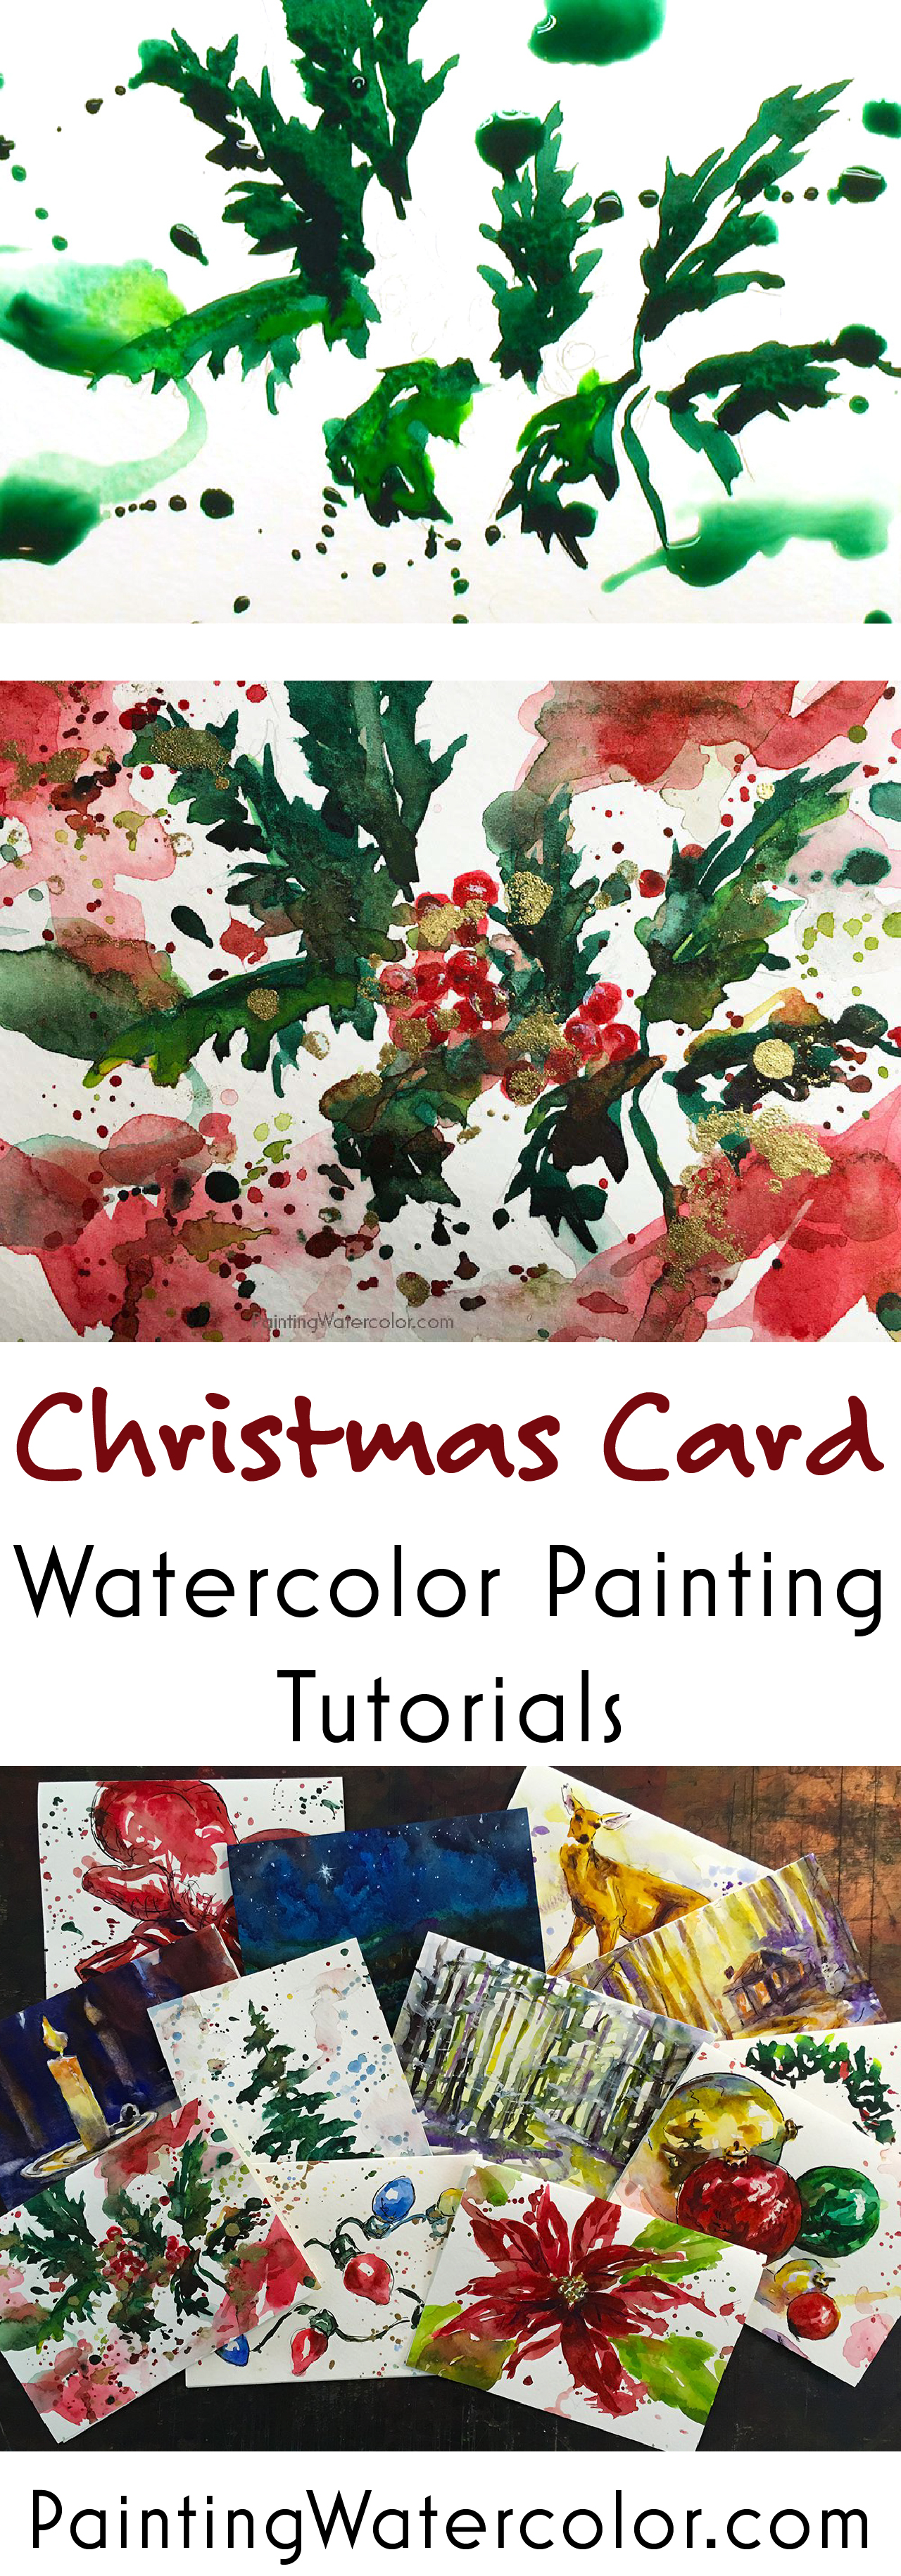 Paint beautiful Christmas cards for your family and friends! I show you step by step how to paint cheerful holly on a Christmas card.